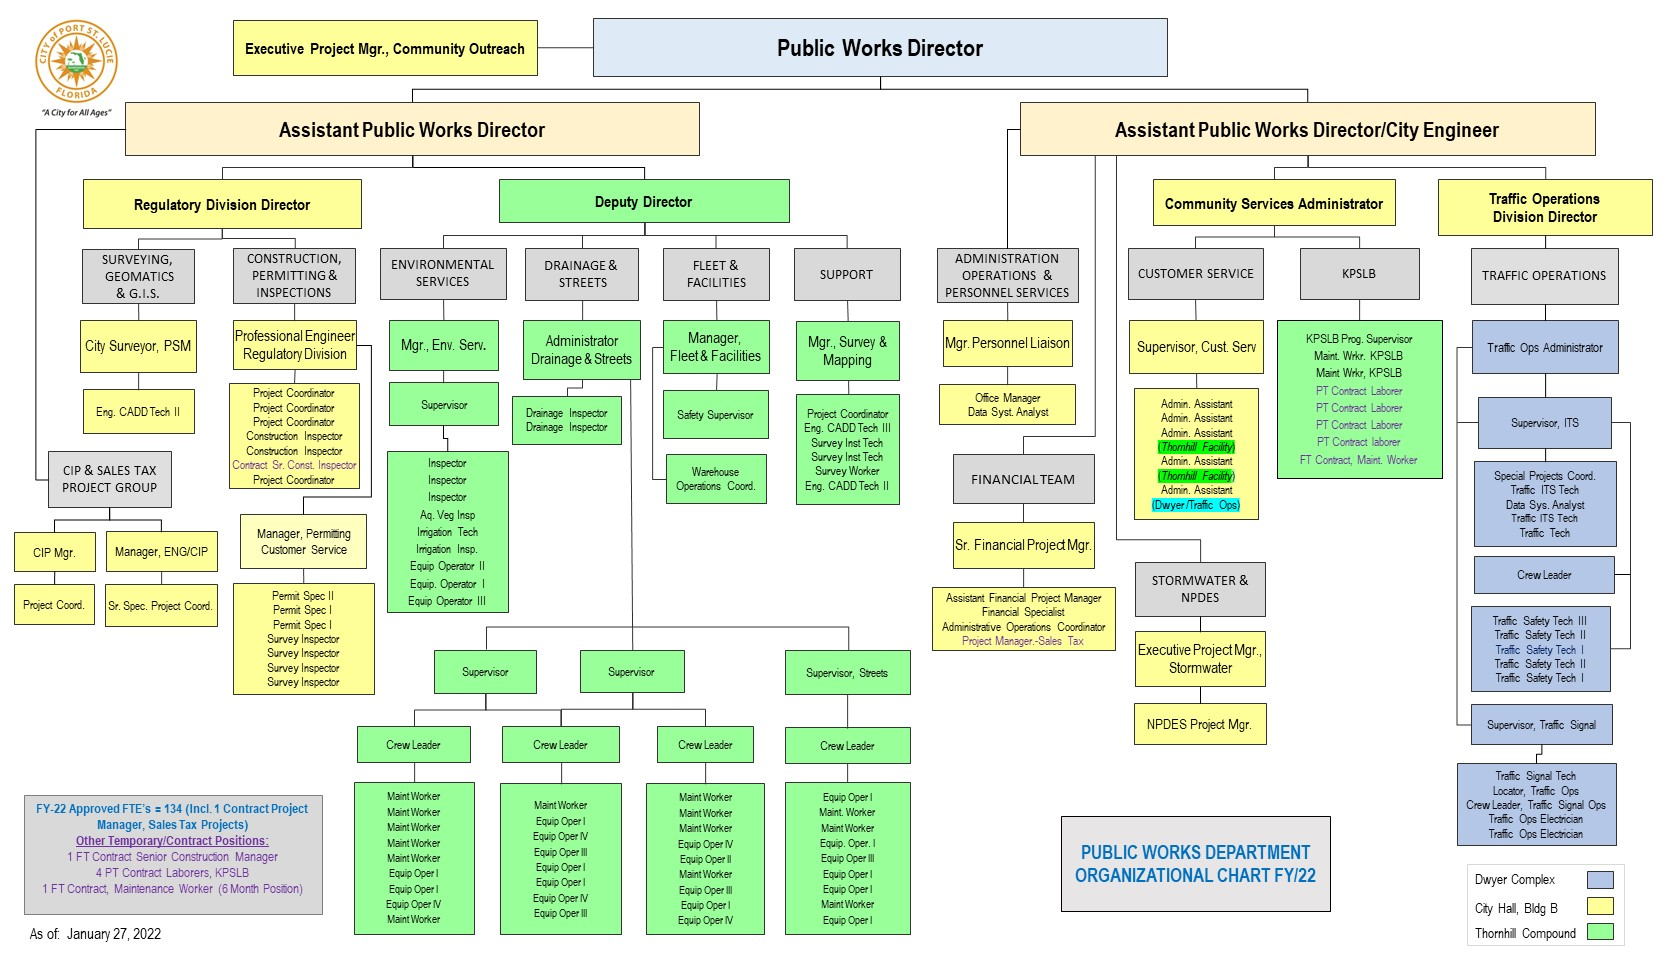 Image of Public Works org chart